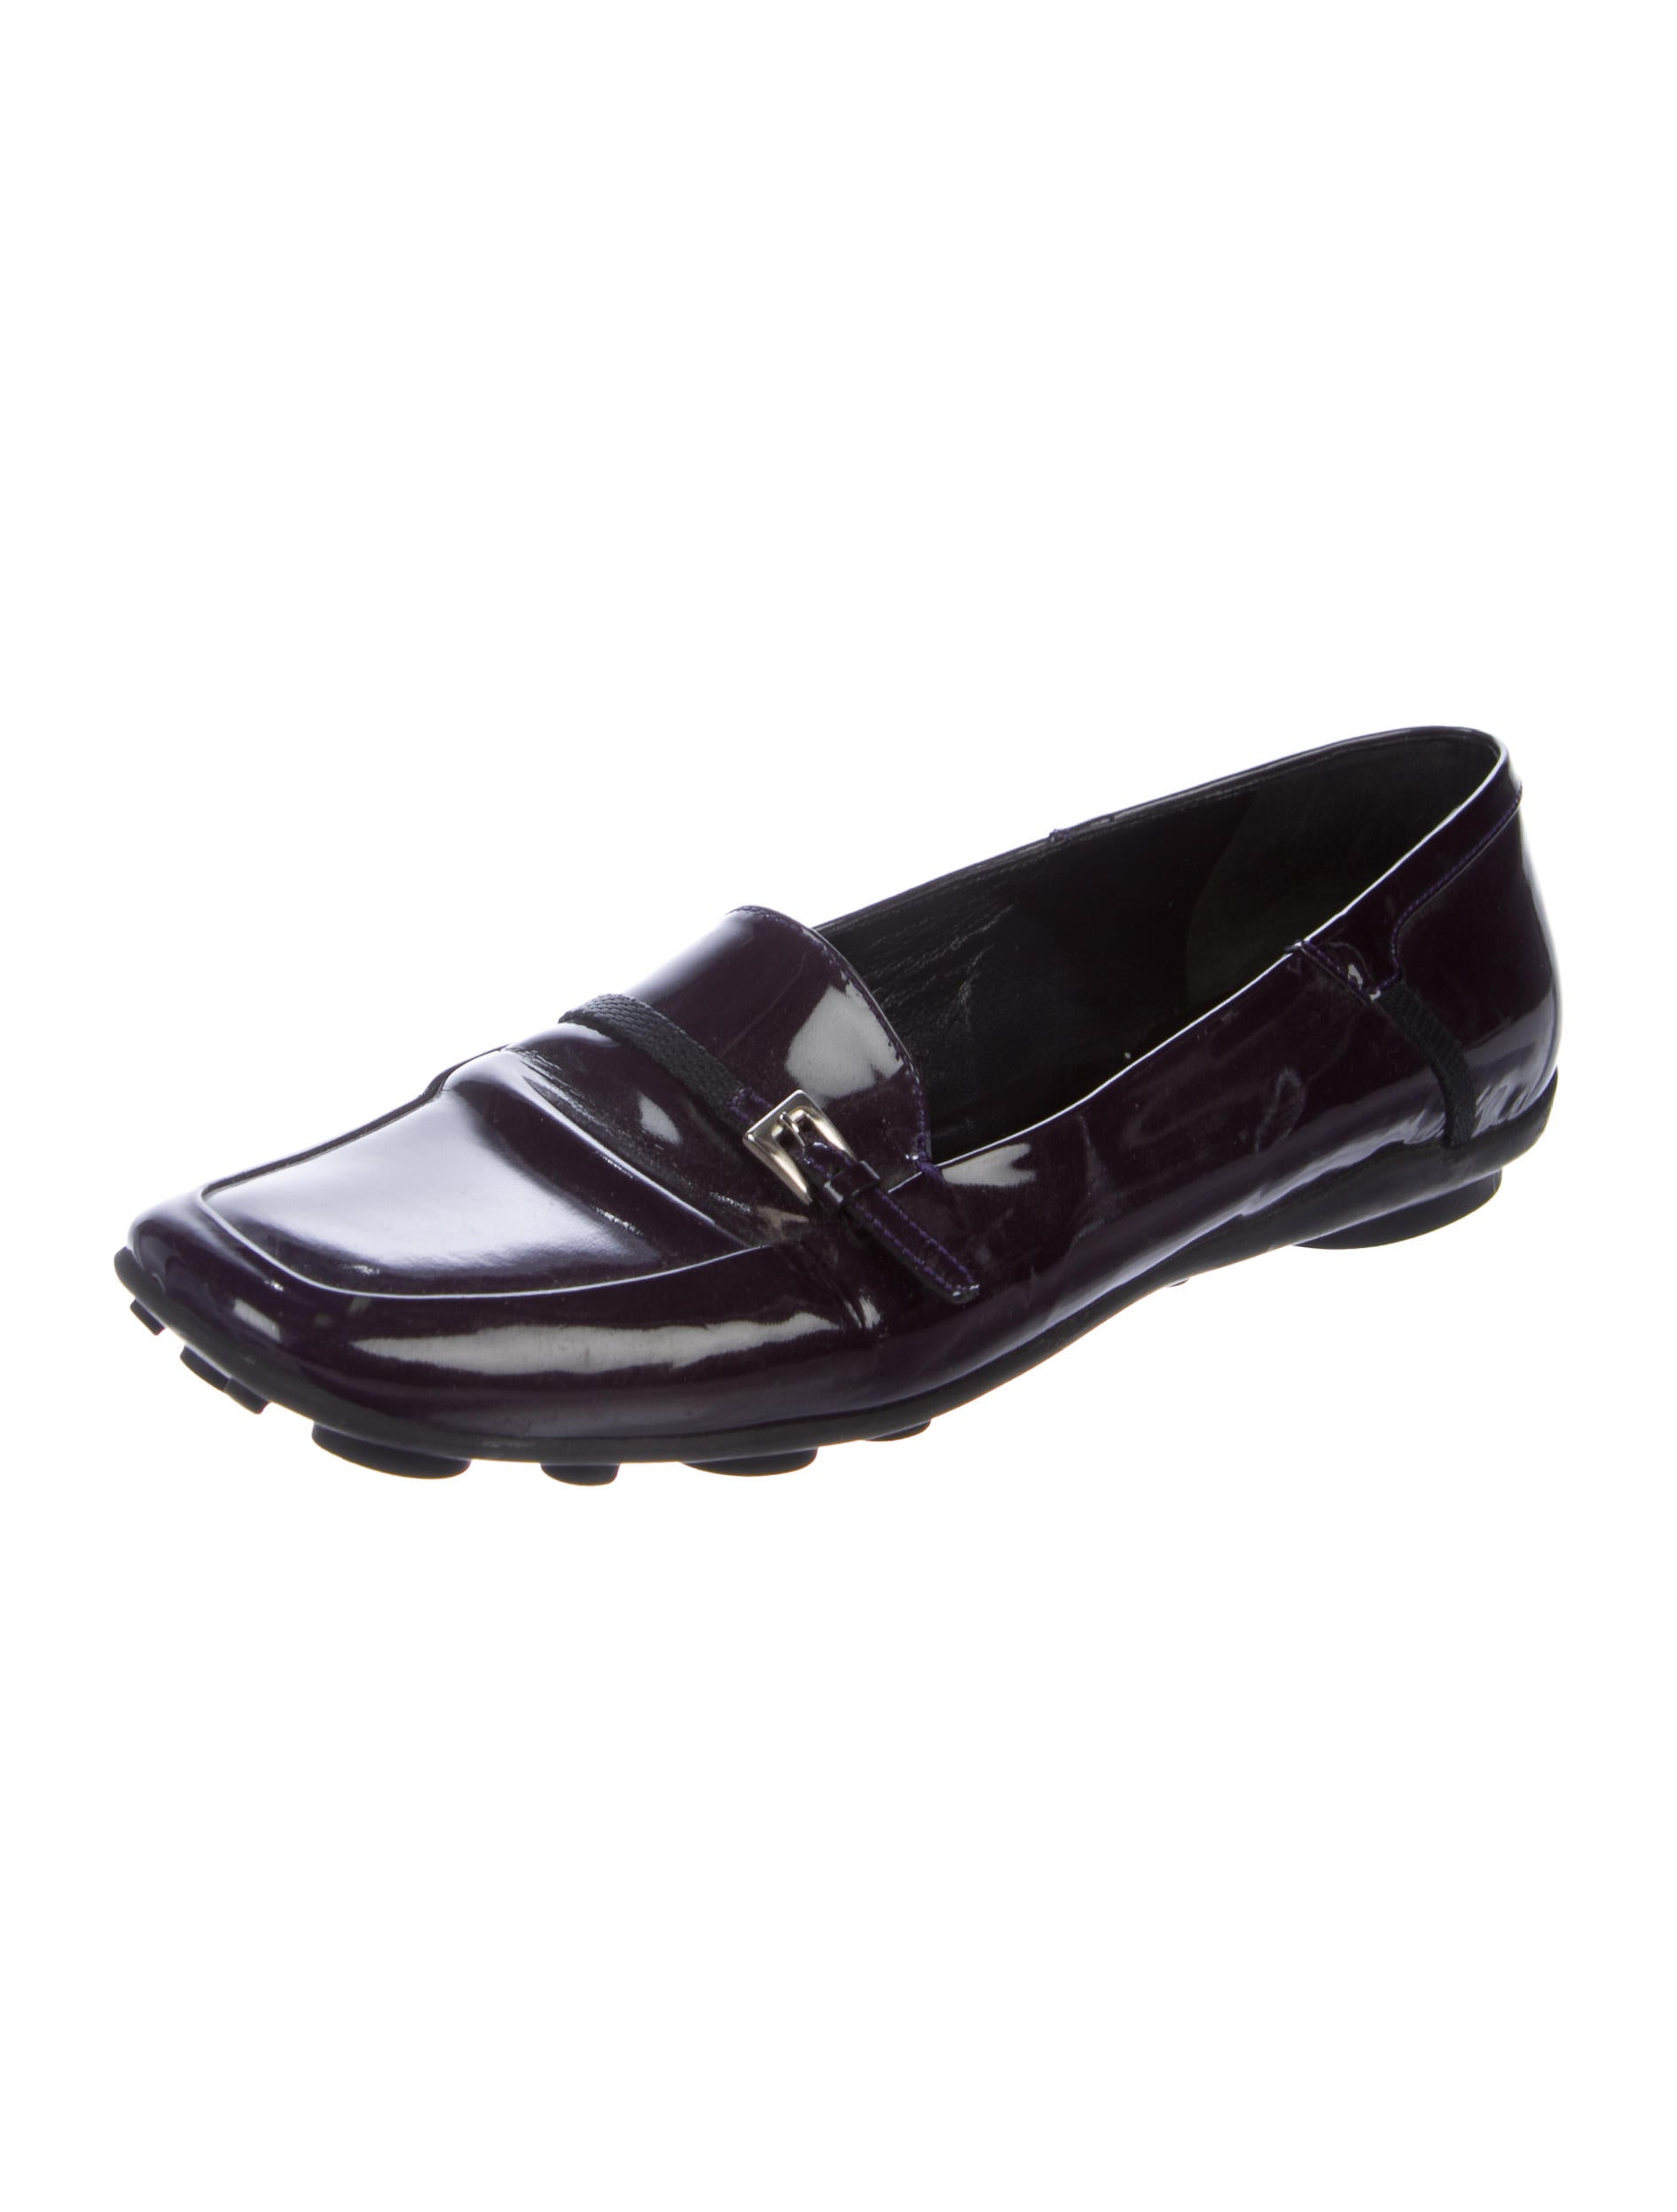 Free shipping BOTH ways on Loafers, Women, Patent Leather, from our vast selection of styles. Fast delivery, and 24/7/ real-person service with a smile. Click or call